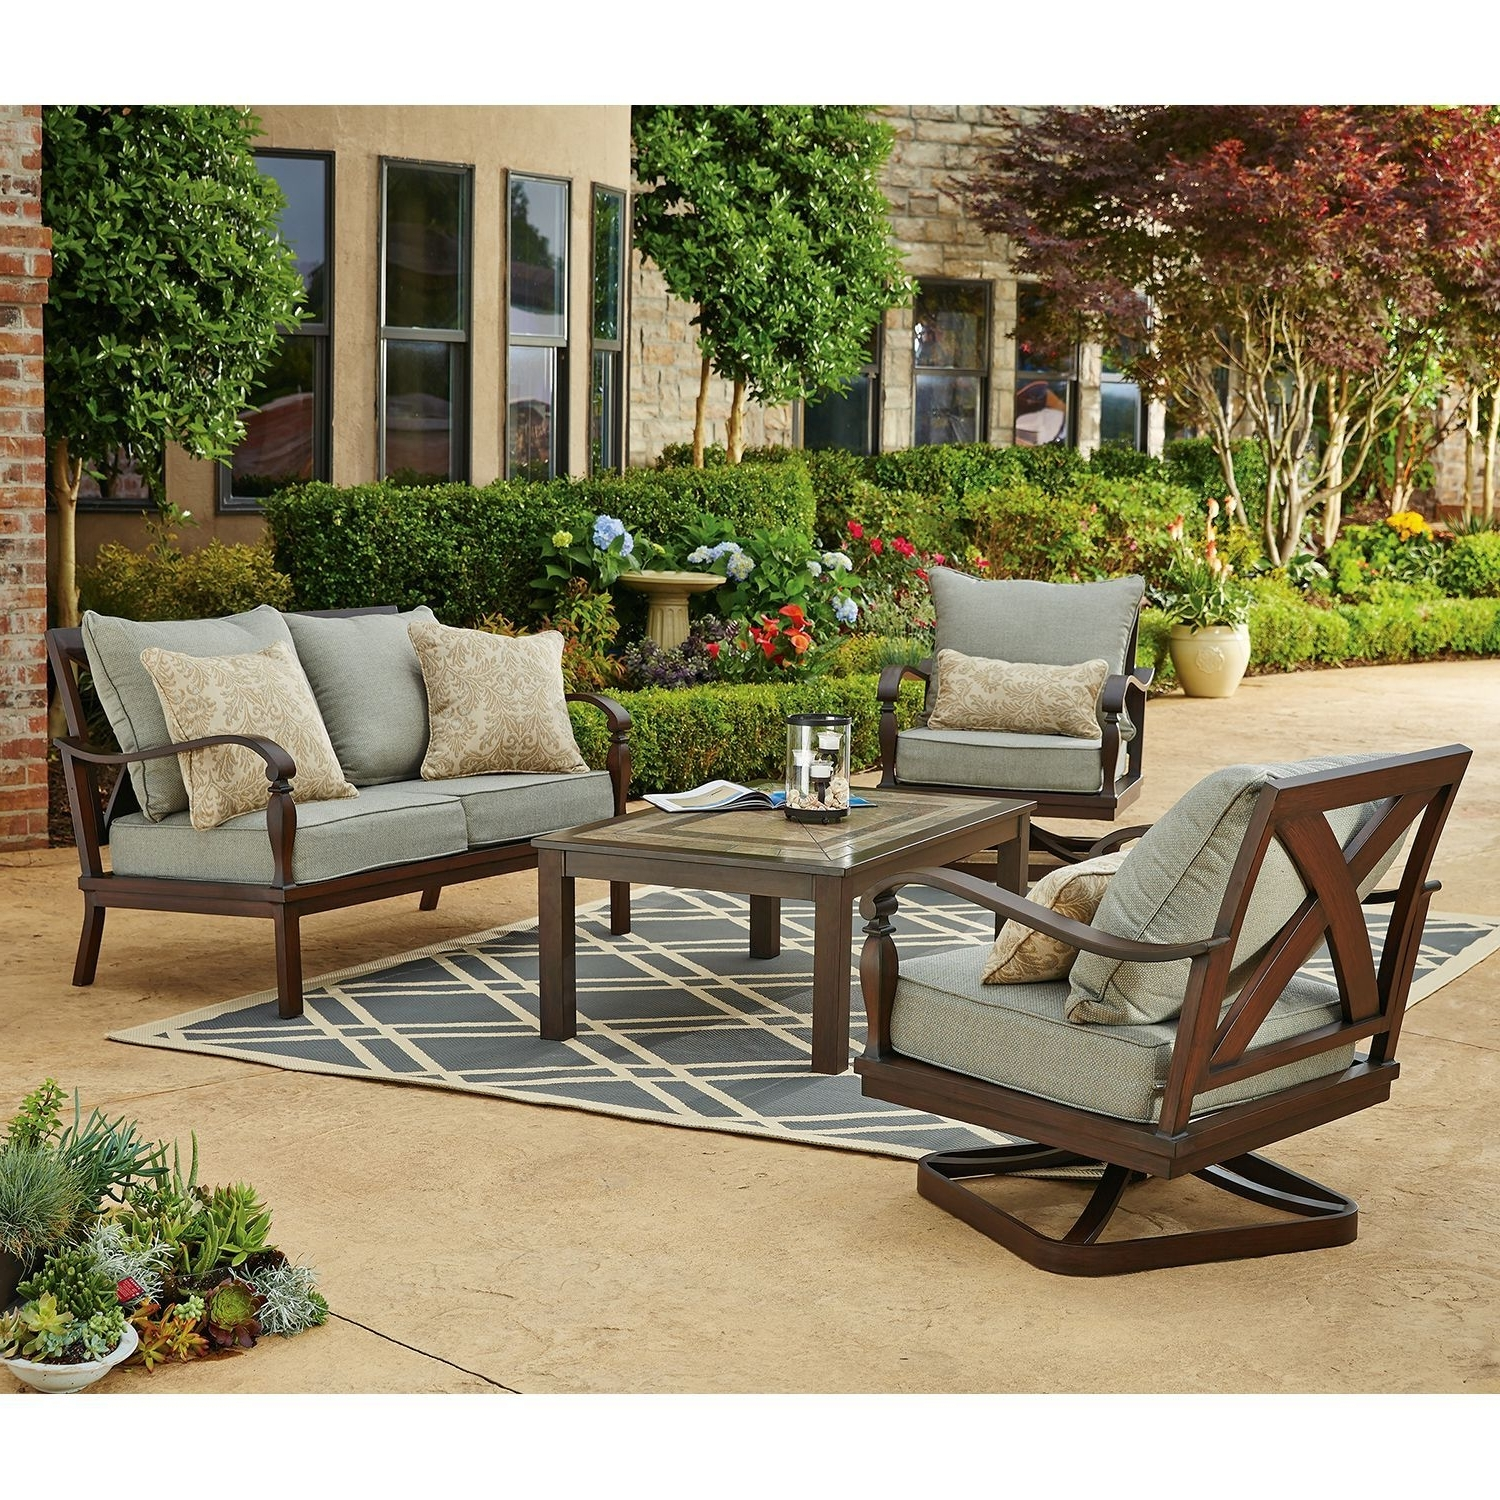 Patios, Outdoor Living And Yard (View 7 of 20)